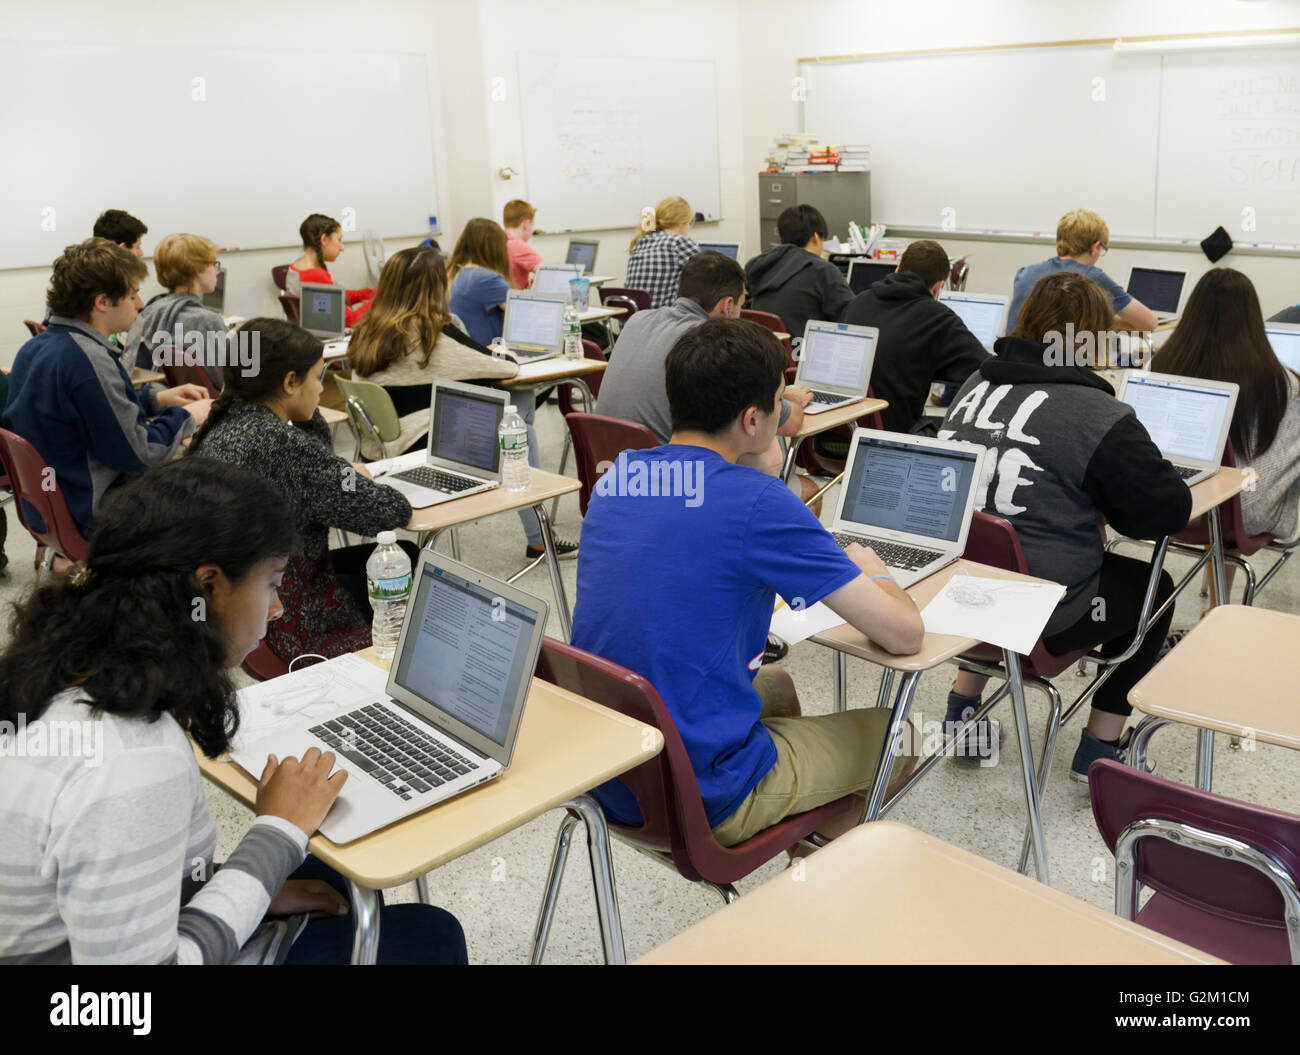 Students taking a test on laptops in a high school classroom. The test is the national PARCC test - Stock Image